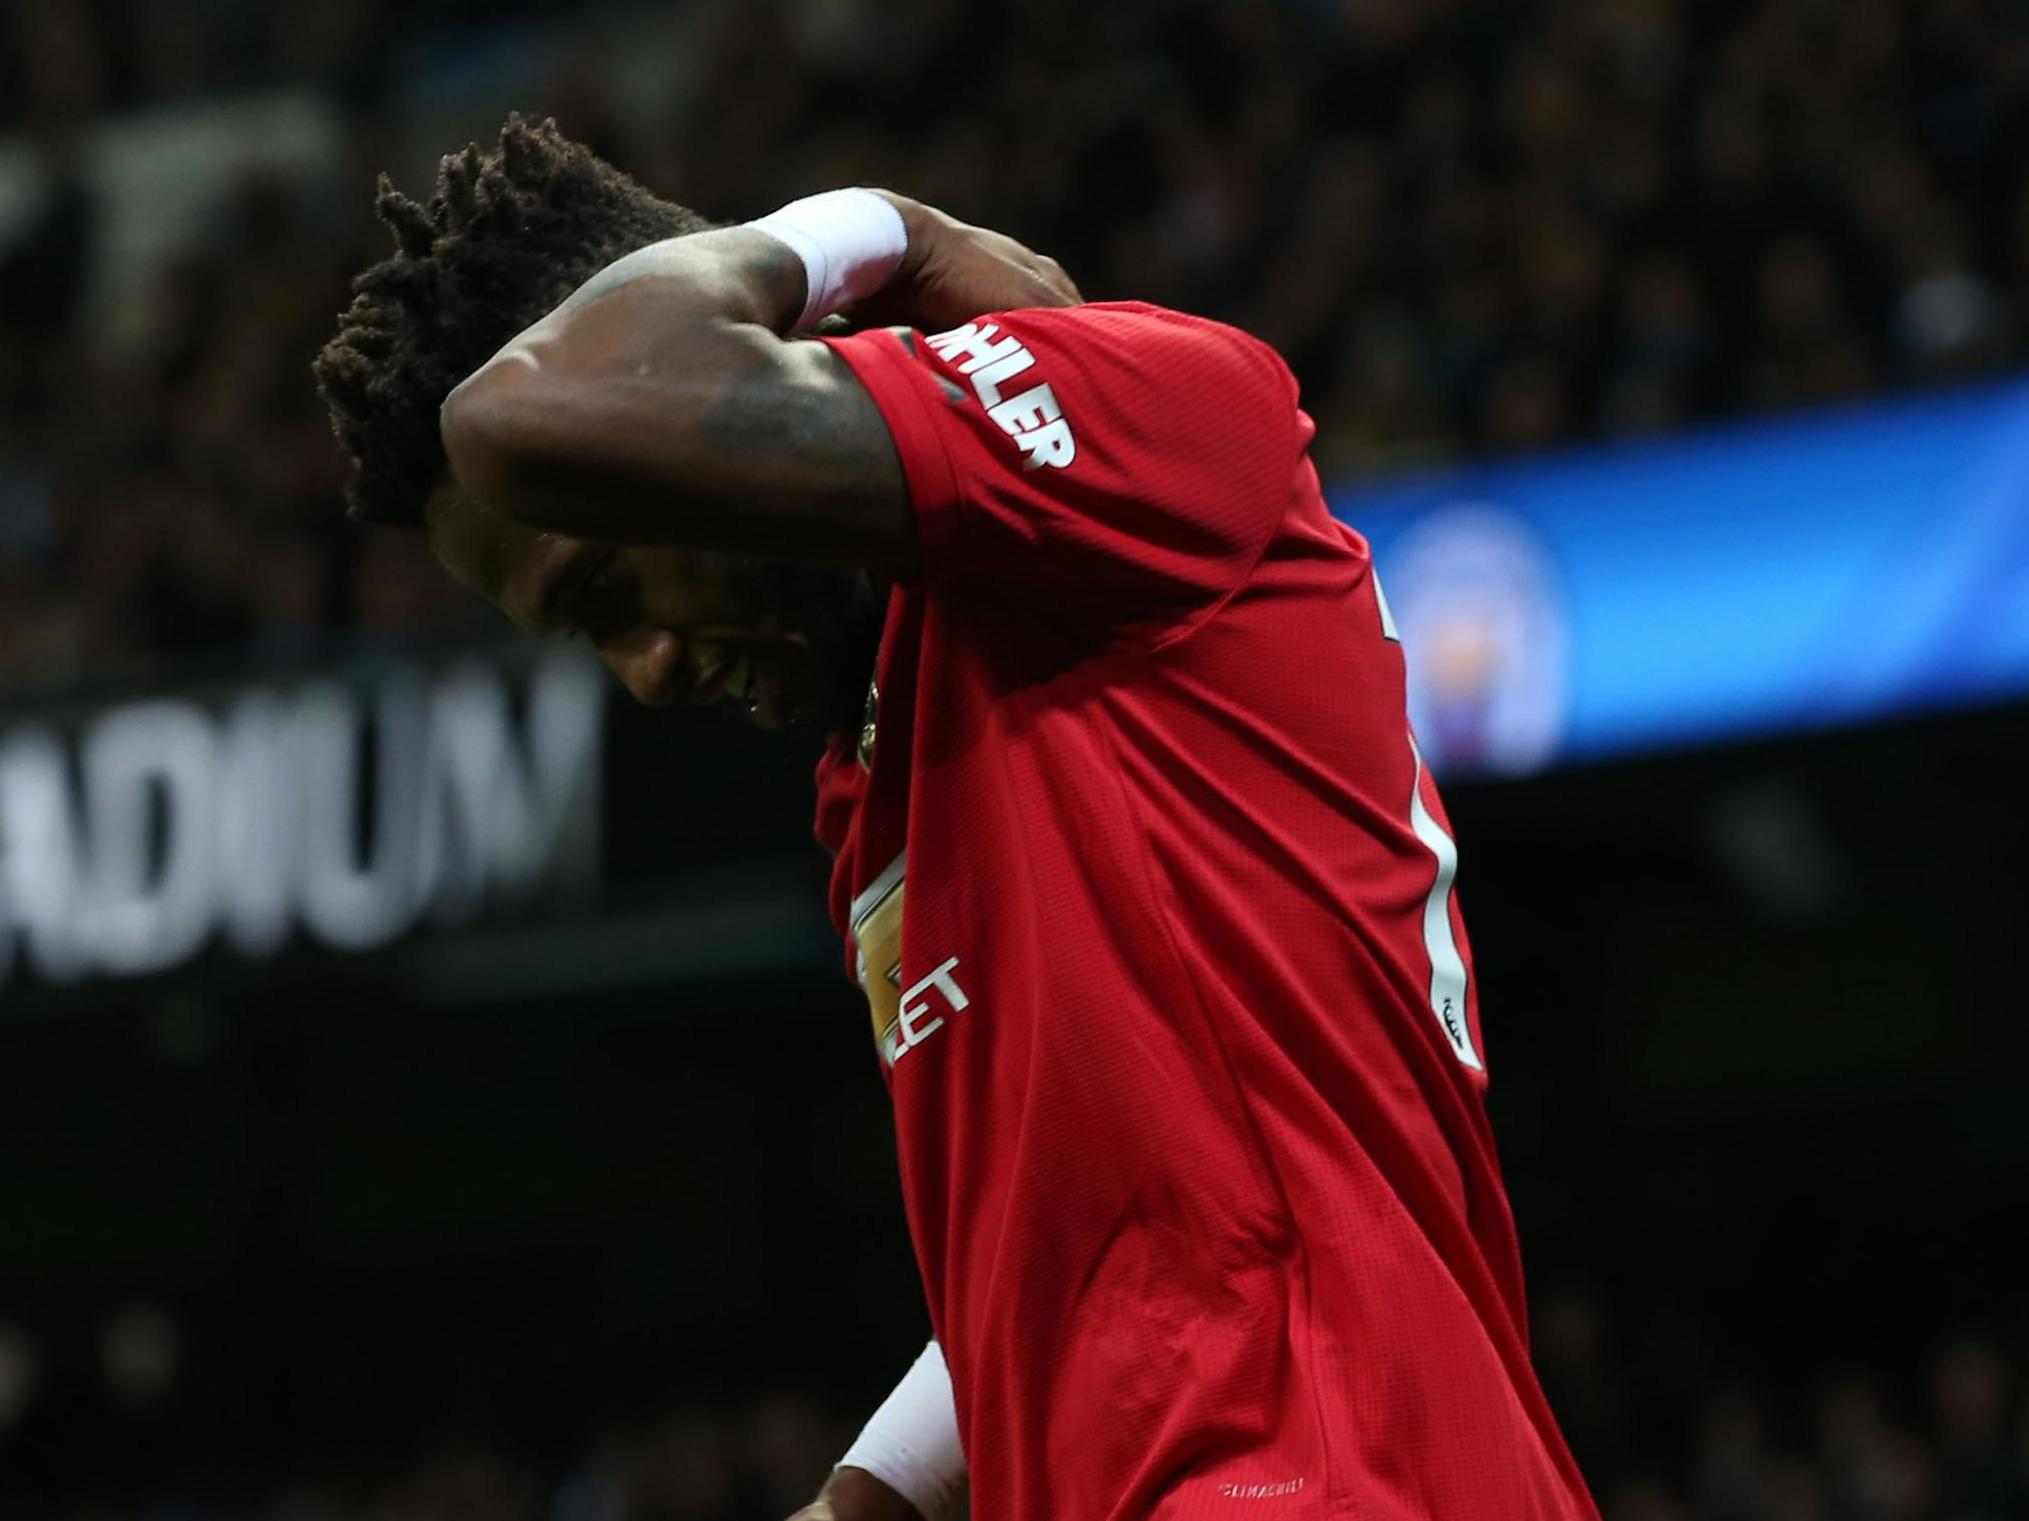 Man City vs Manchester United: More than one United player subjected to racial abuse